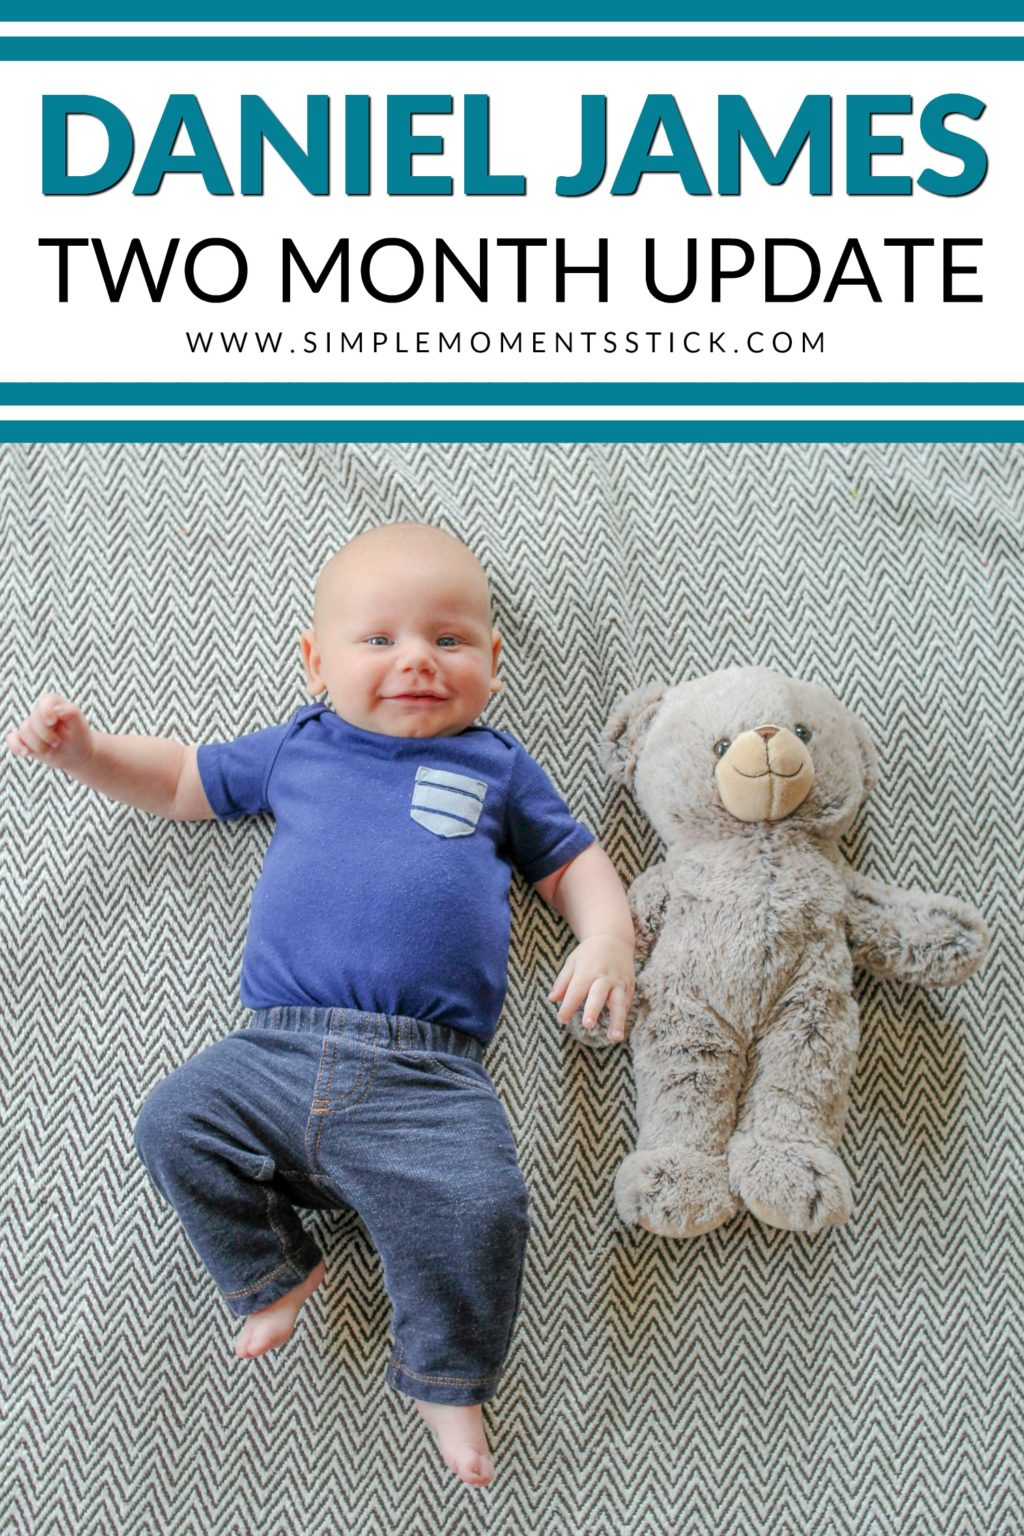 Baby boy laying on back next to teddy bear with text - Daniel James: Two Month Update